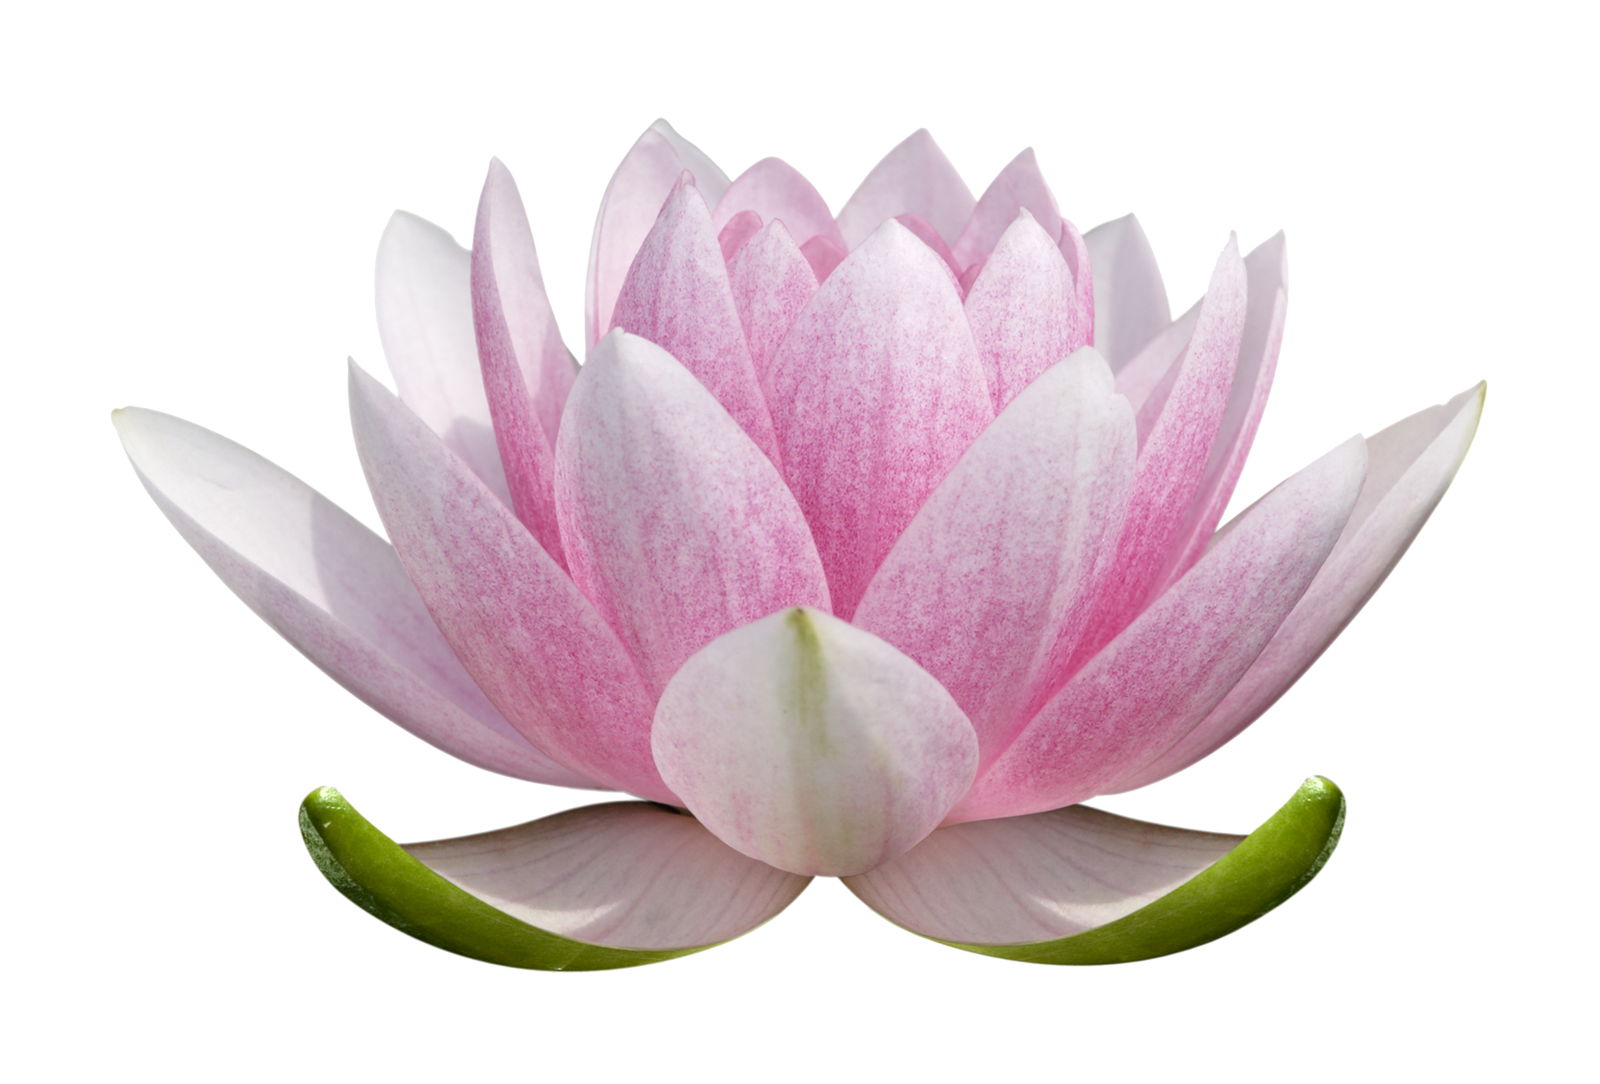 Lotus flower clipart no background png freeuse download Lotus Flower PNG images free download png freeuse download